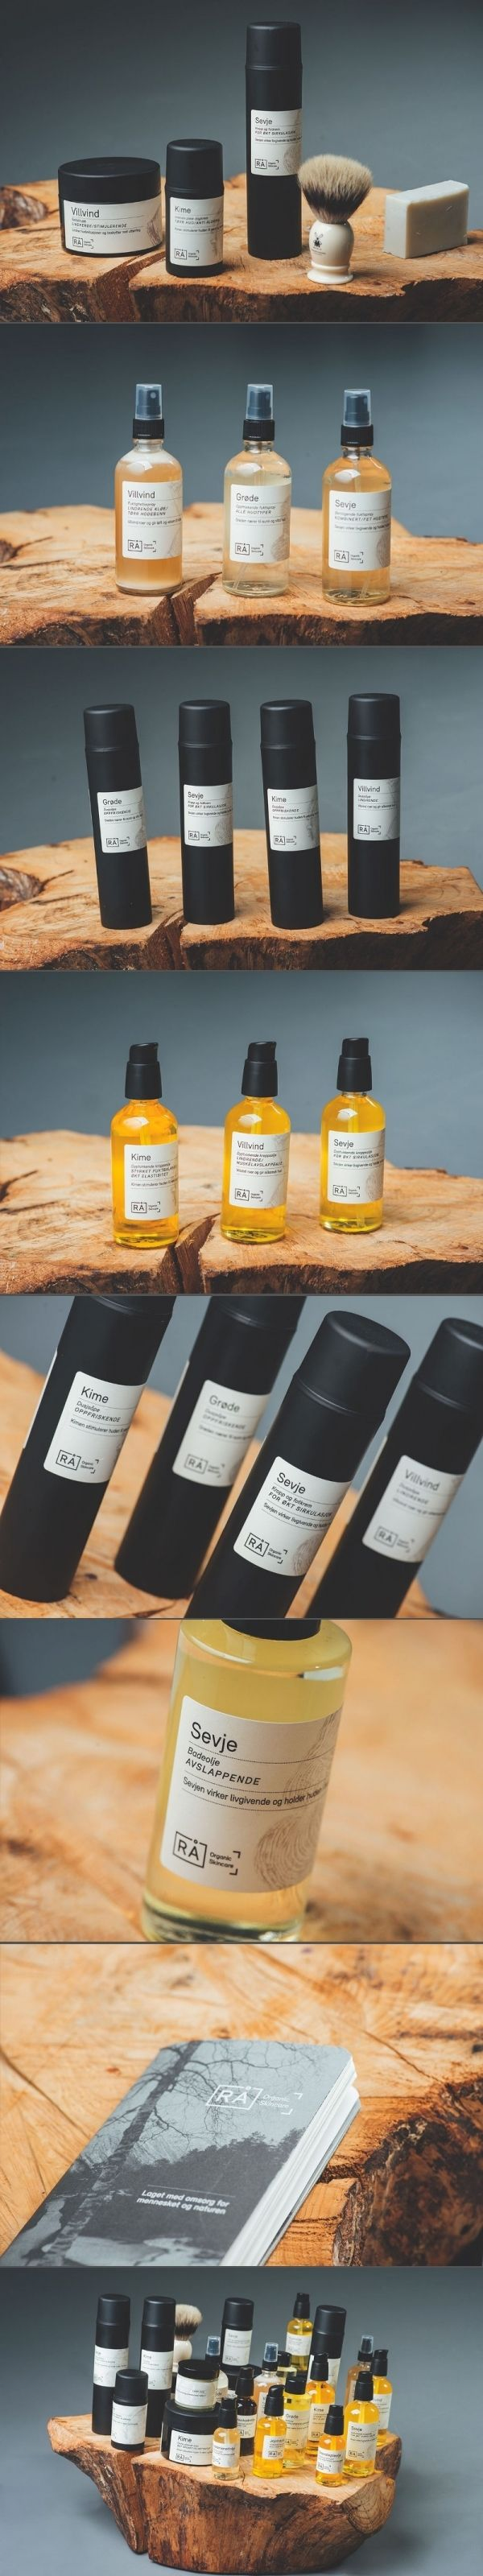 RA Organic Skincare. A skincare product that even men would bother to take a second look. #packaging #design